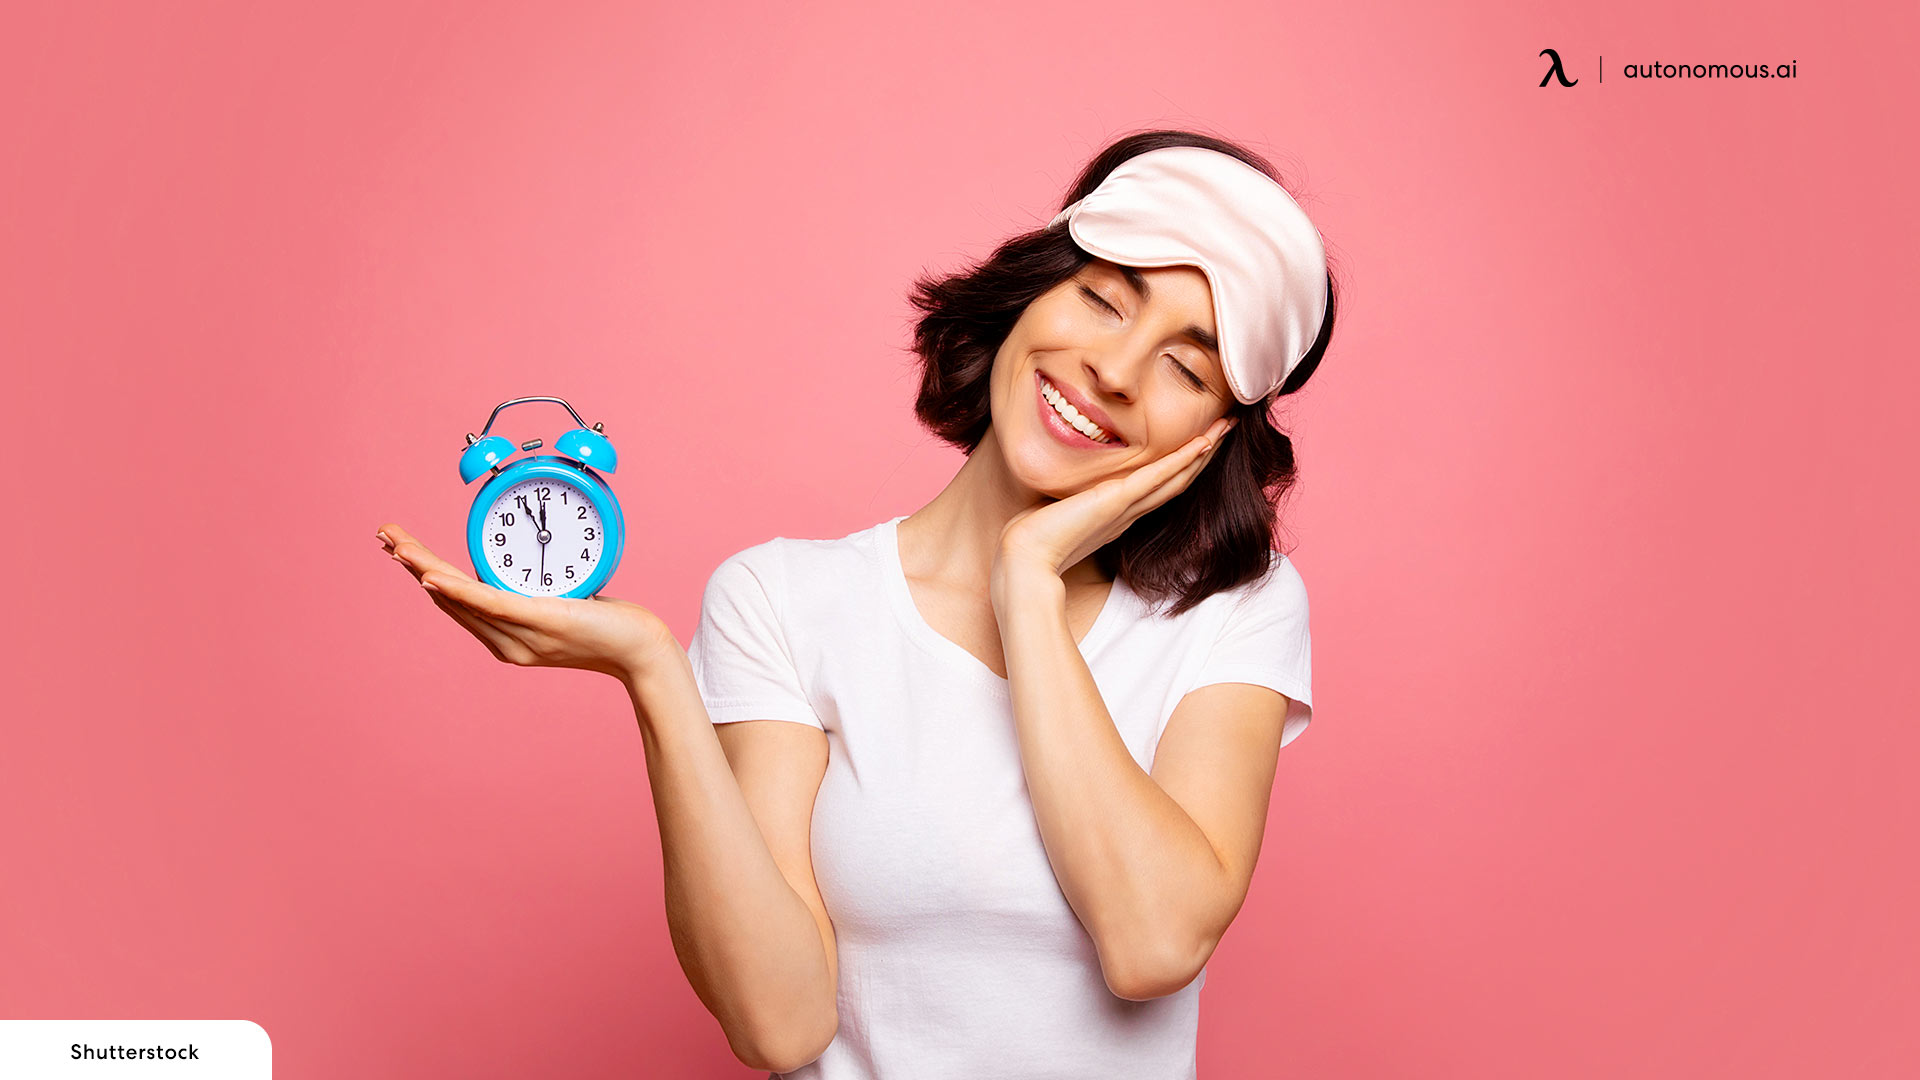 Pay attention to your biological clock